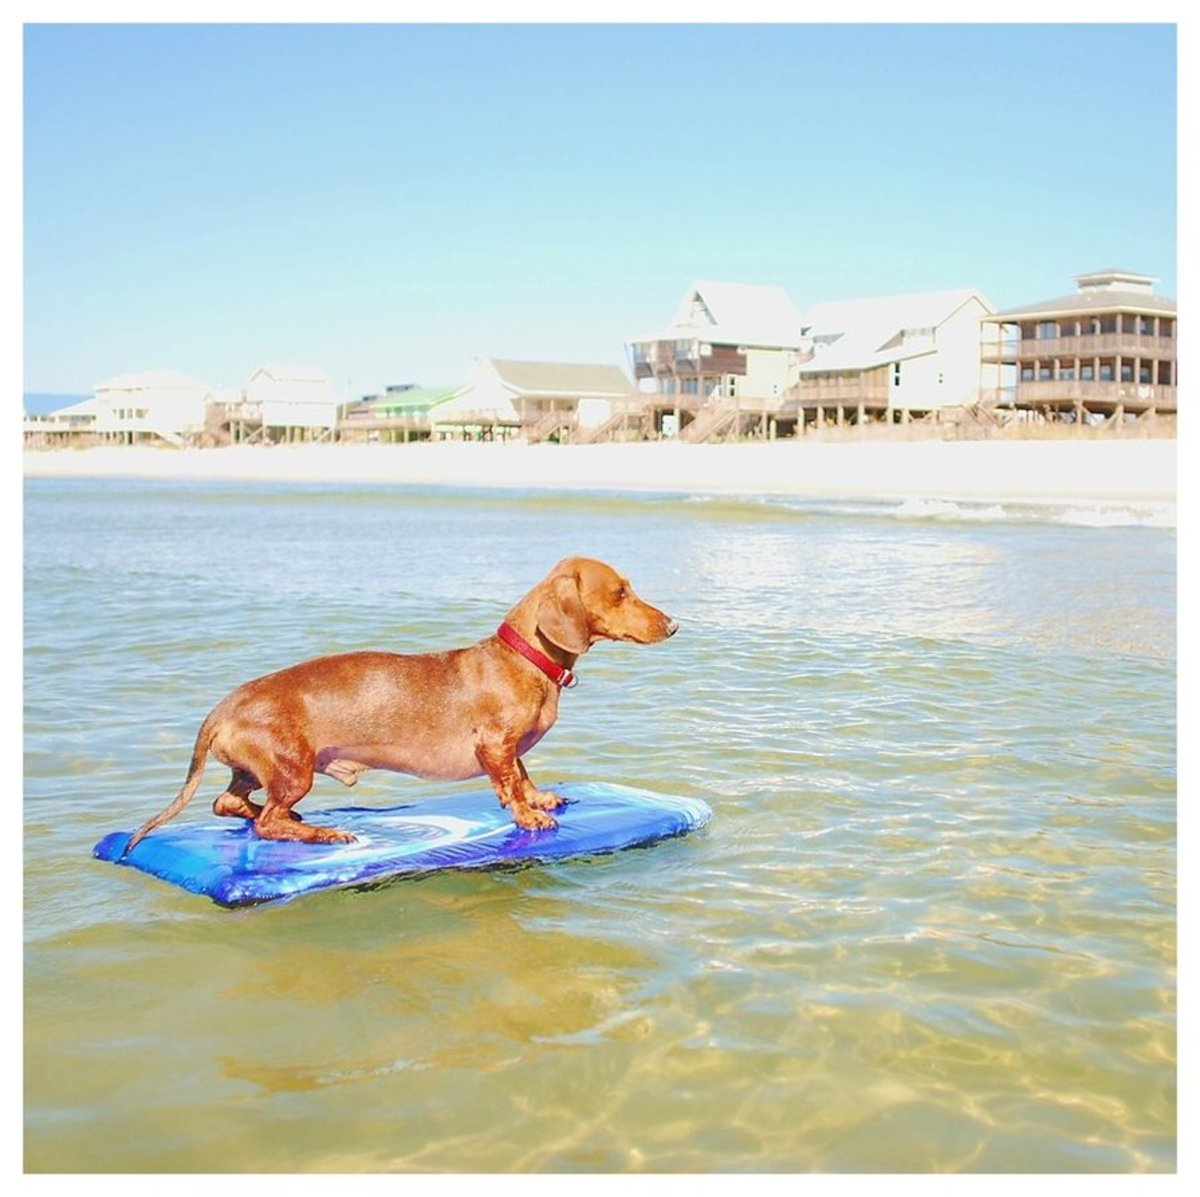 """""""Oota."""" This is Oo-Oo, or Oota, our family's beloved daschund. He went to the beach every year and surfed in the ocean waters of Gulf Shores, Alabama. Now that he has passed on, this image brings back the most wonderful memories."""